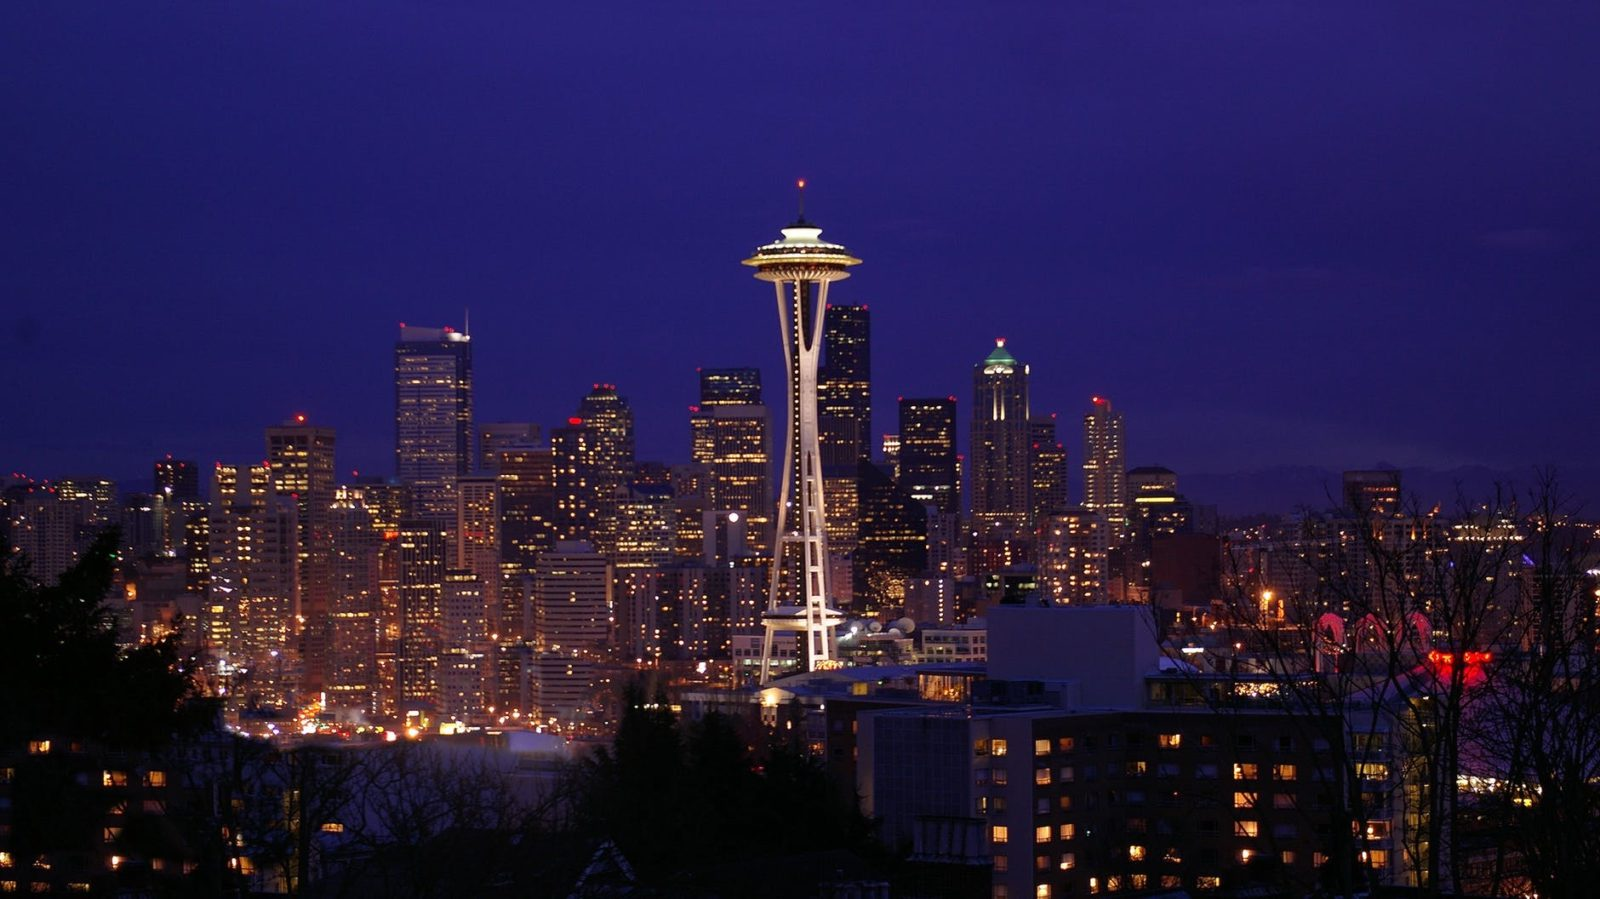 Hotel Deal For Seattle Washington #seattlewashington #usholiday #newyearsday